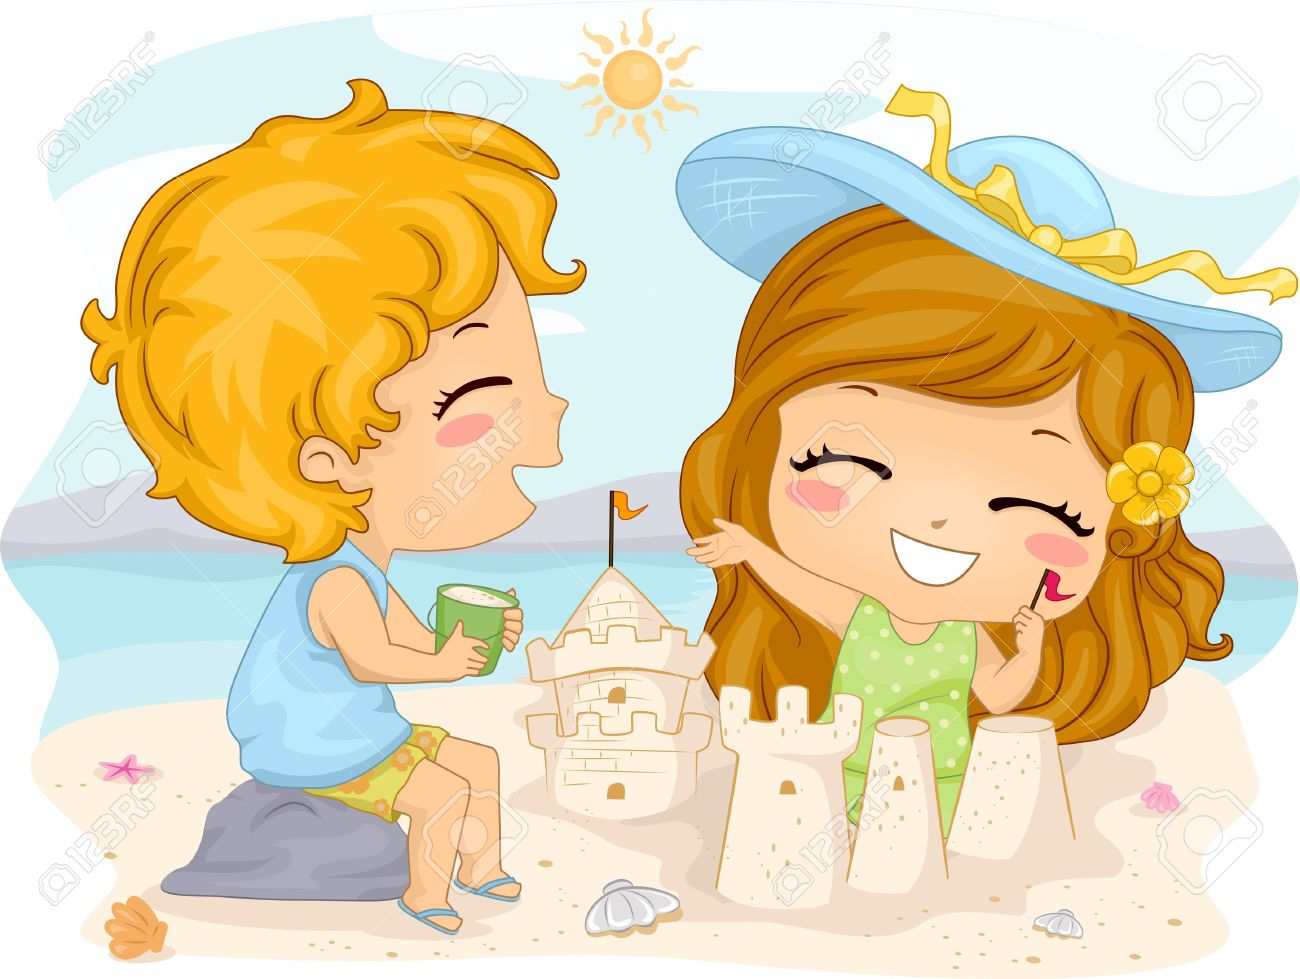 Illustration Of Kids Making Sand Castles Stock Photo, Picture And.